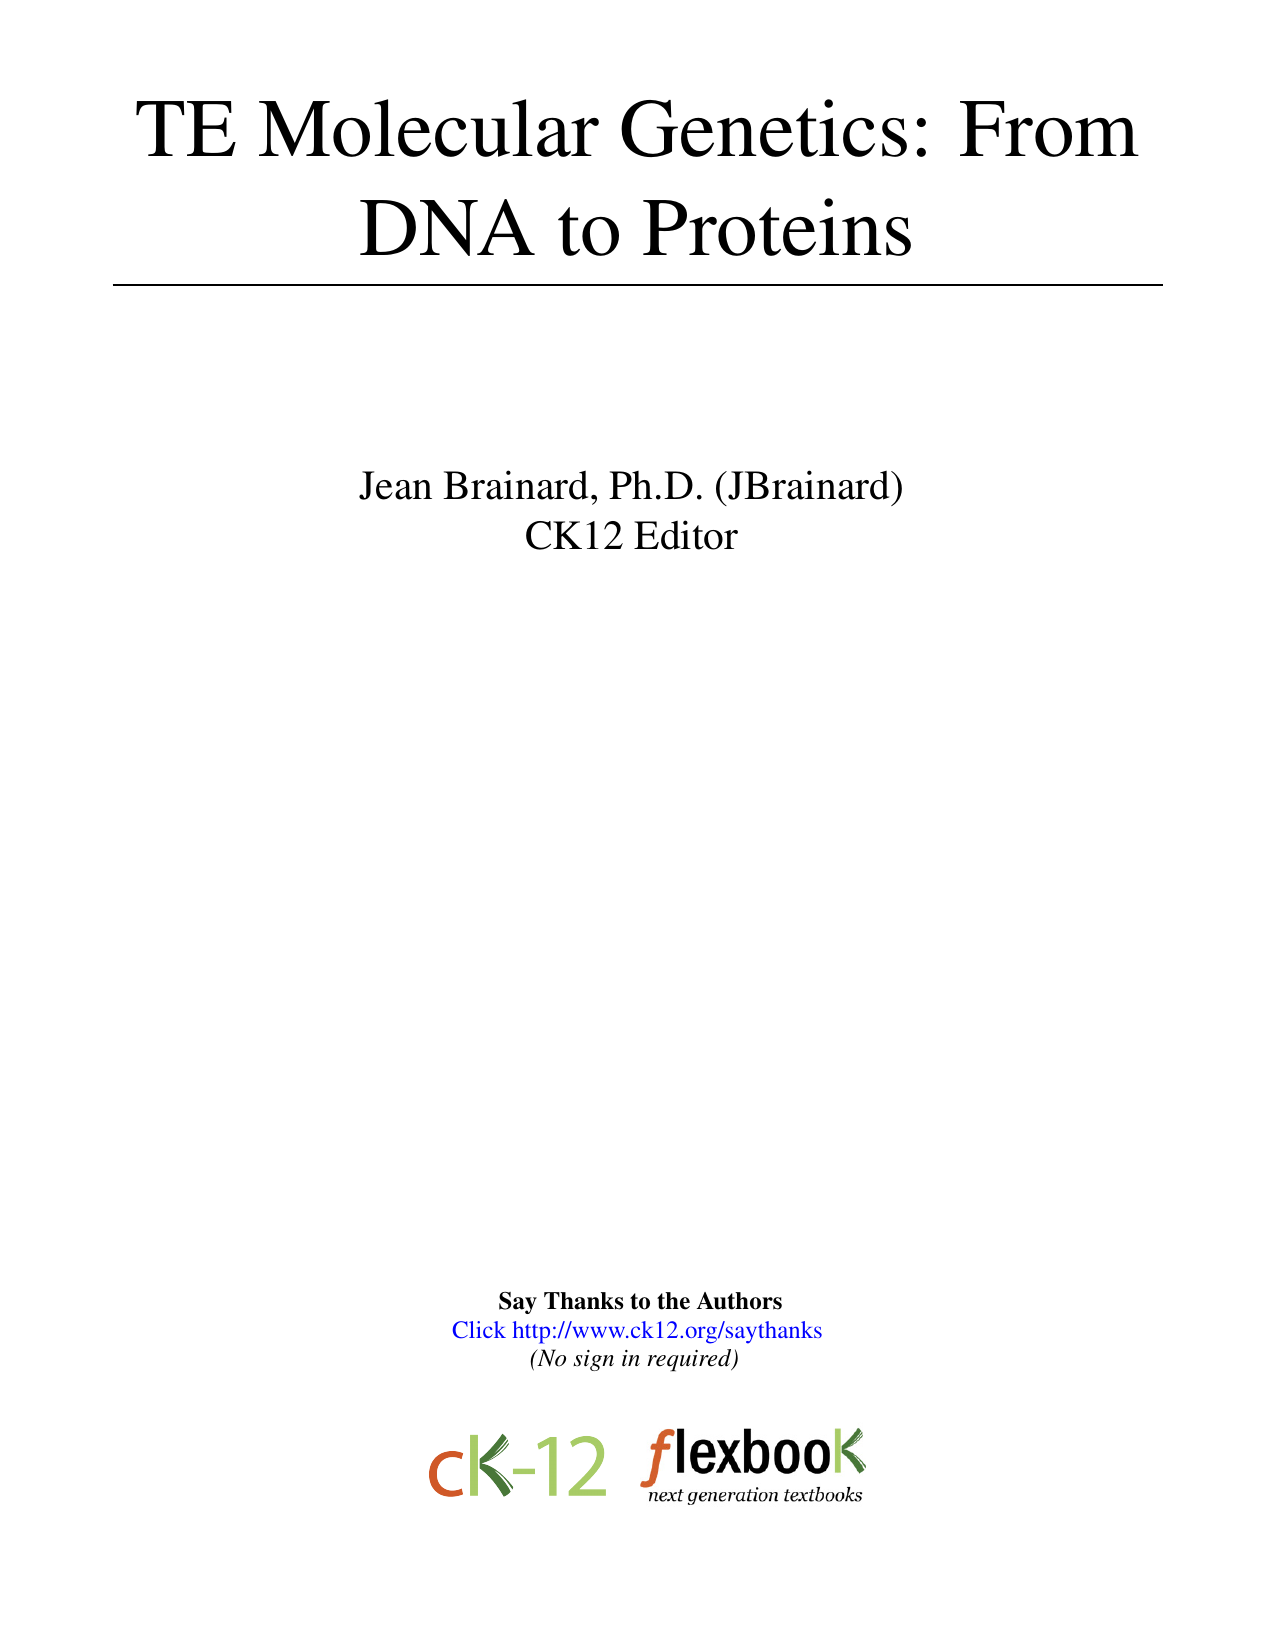 TE Molecular Genetics: From DNA to Proteins